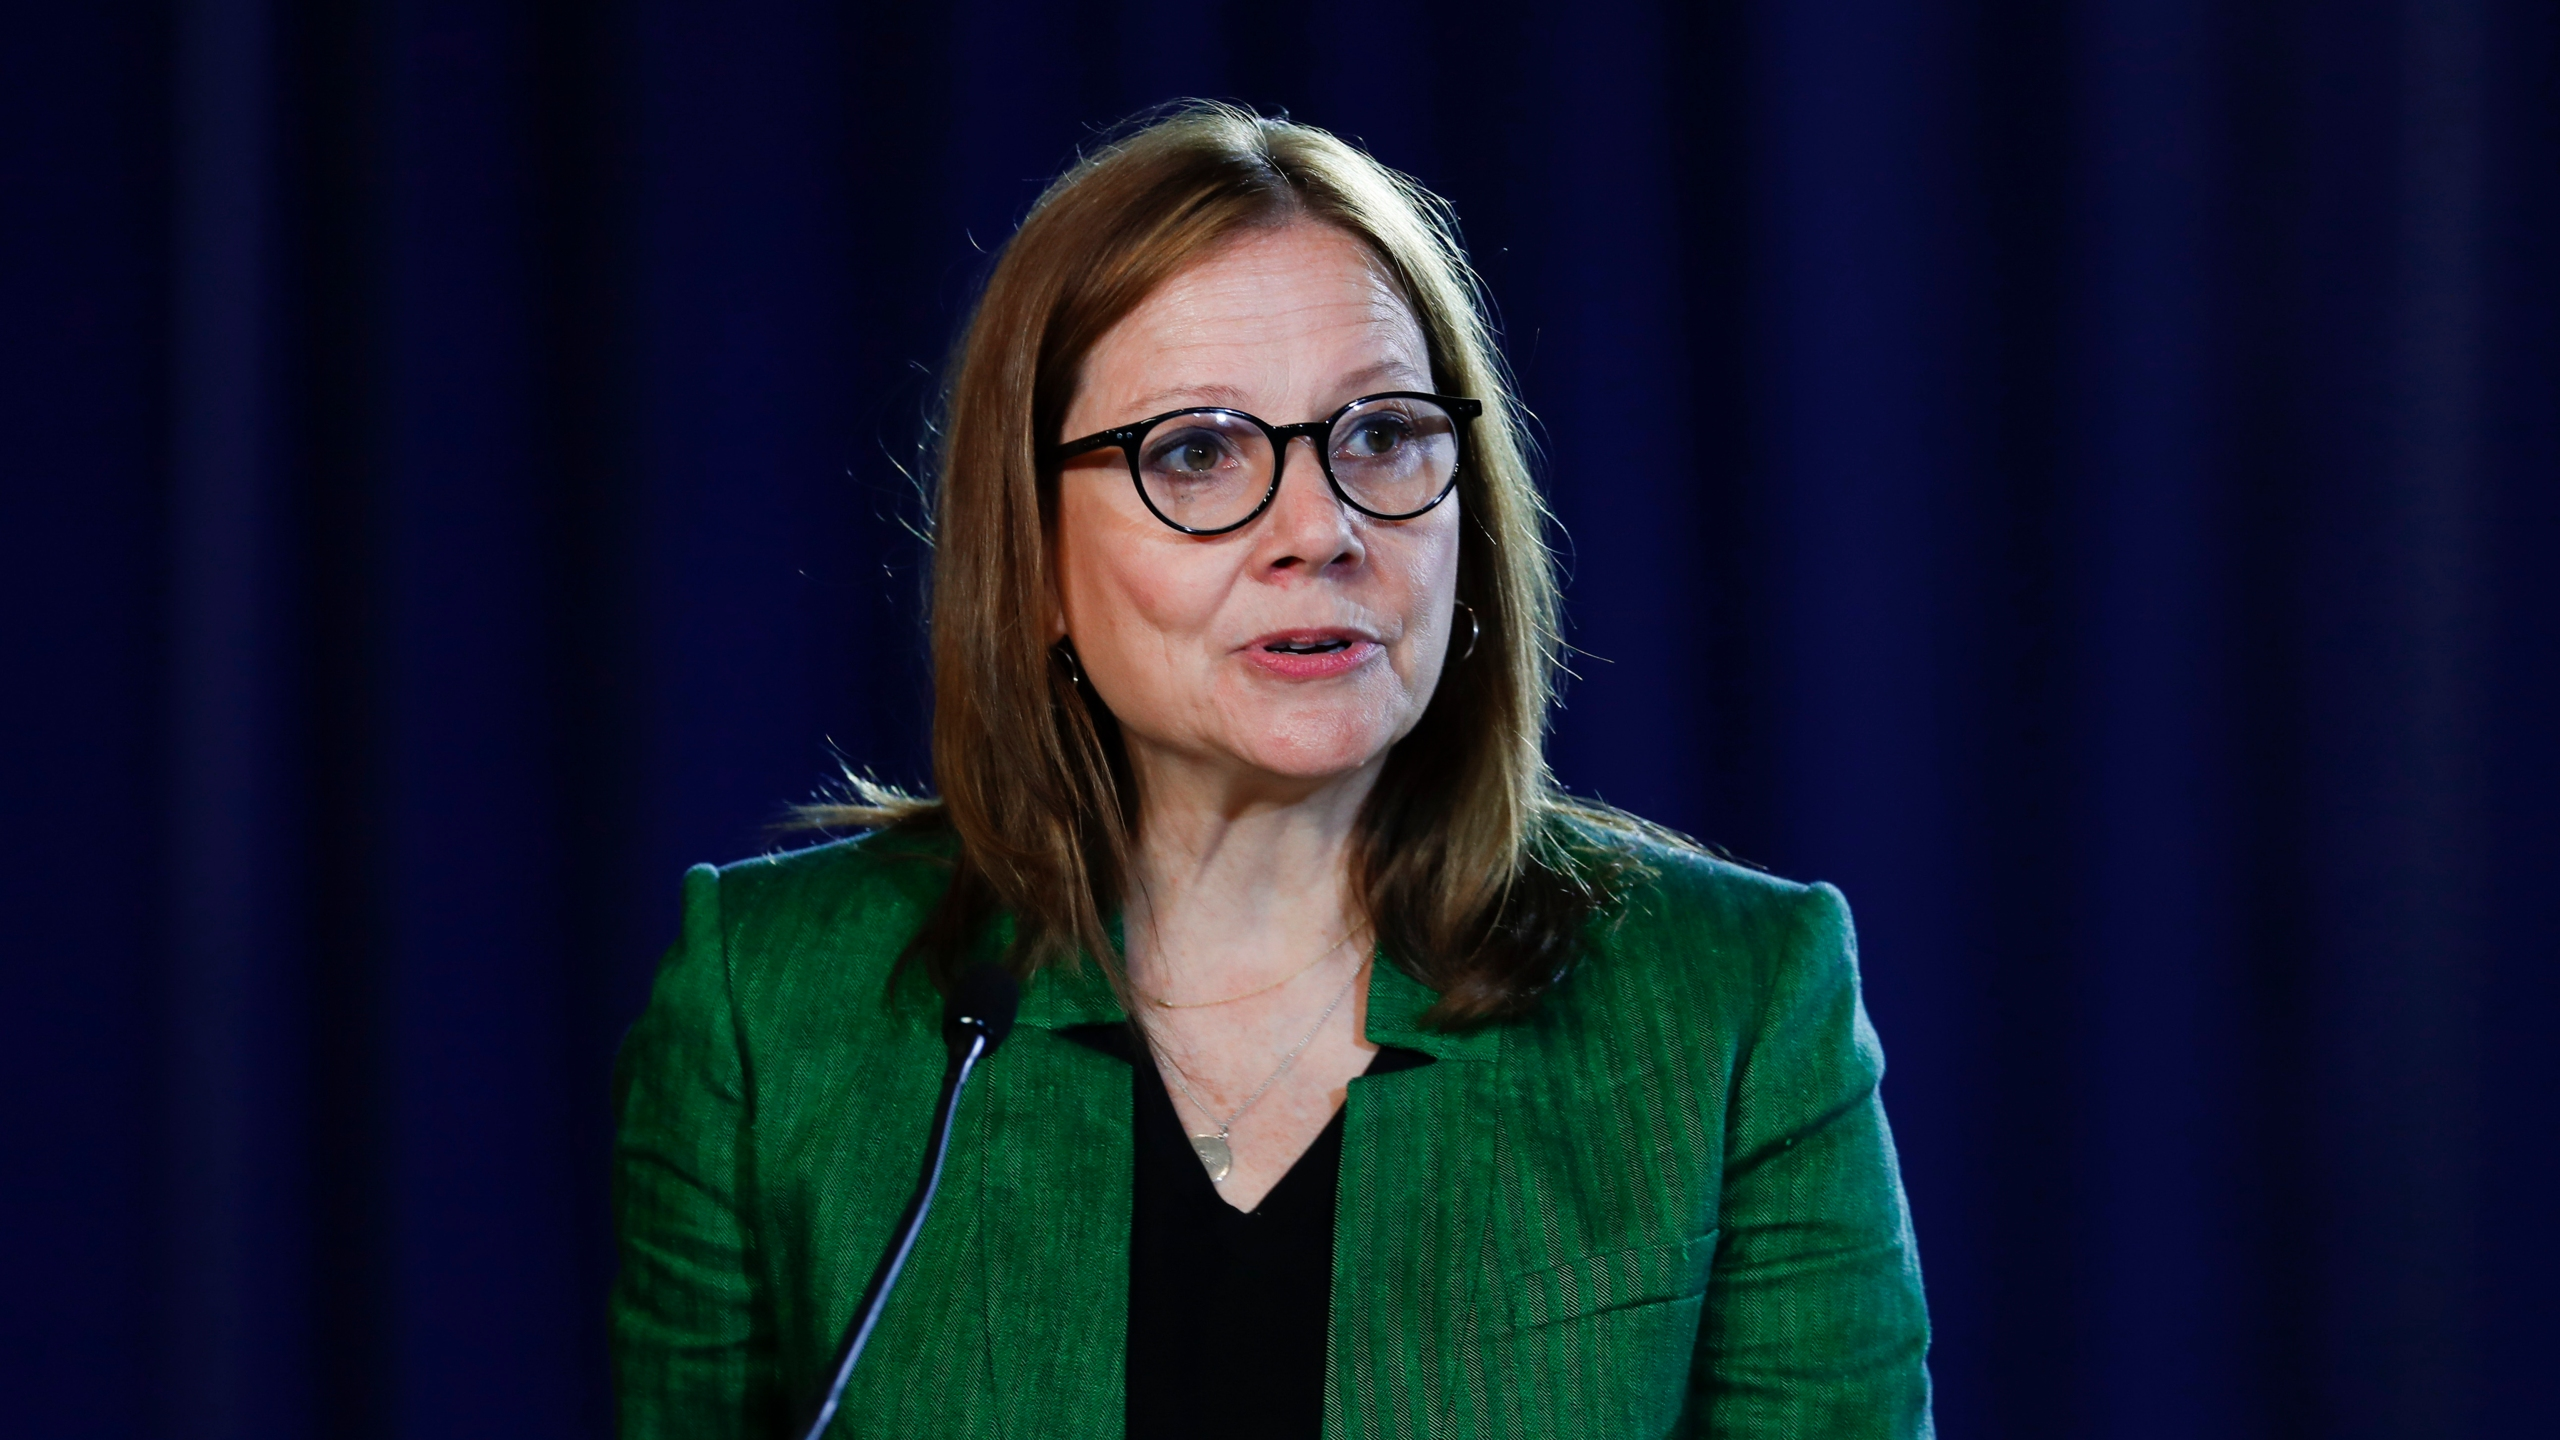 In this July 16, 2019, file photo General Motors CEO Mary Barra speaks during the opening of their contract talks with the United Auto Workers in Detroit. Most of the women running the biggest U.S. companies saw their pay increase last year, 2020, even as the pandemic hammered the economy and many of their businesses. (AP Photo/Paul Sancya, File)